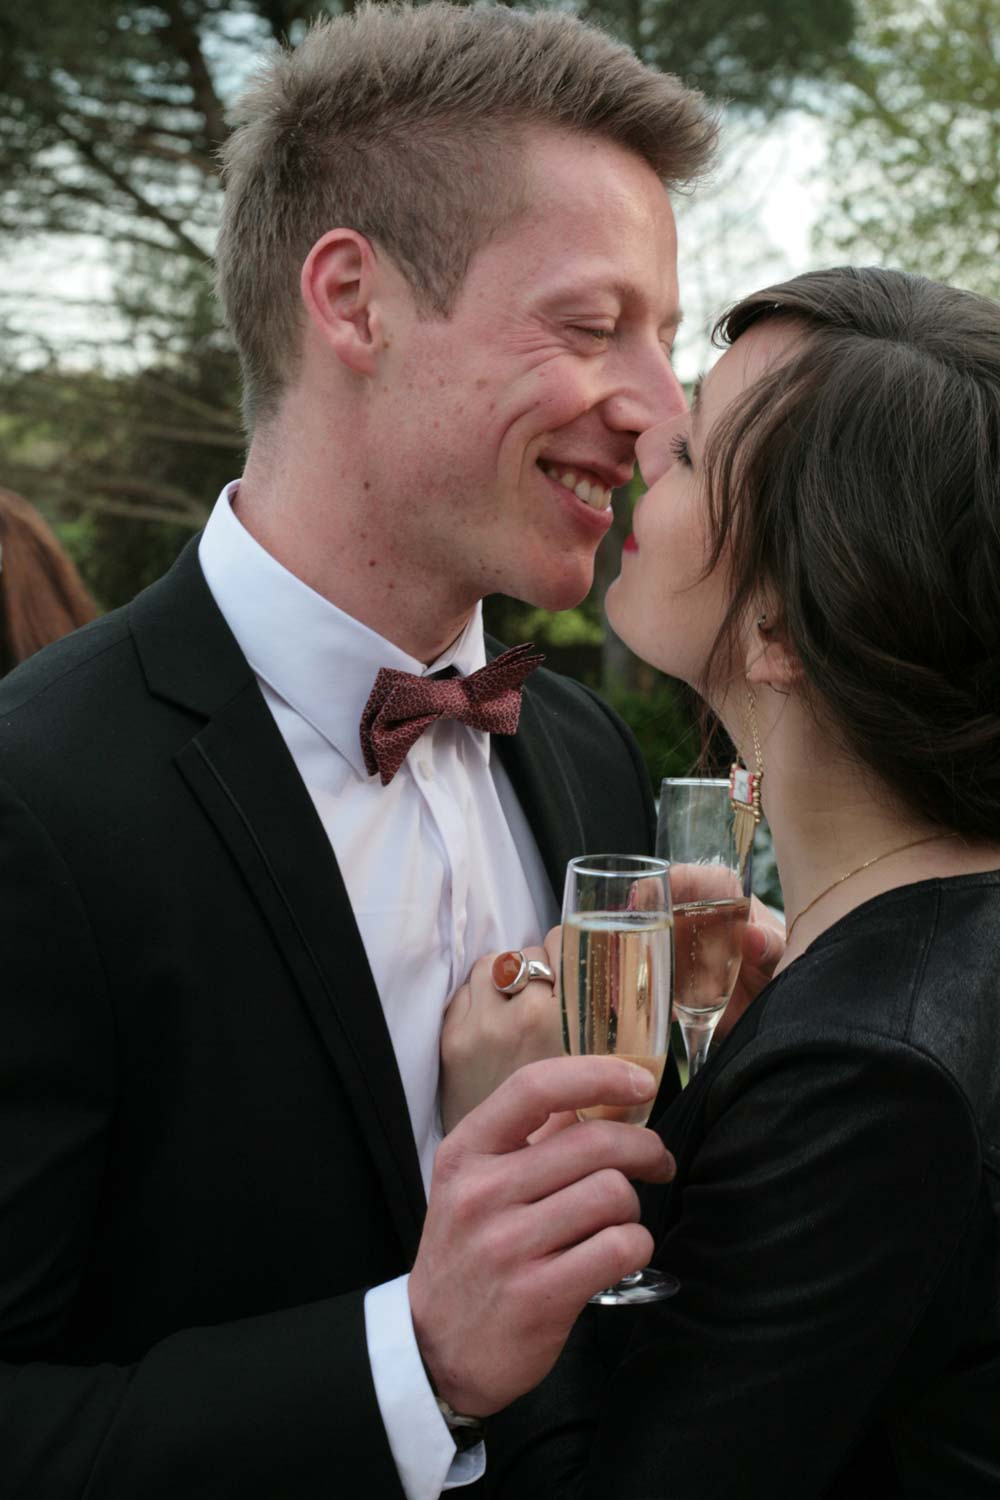 mariage-couple-cocktail-champagne